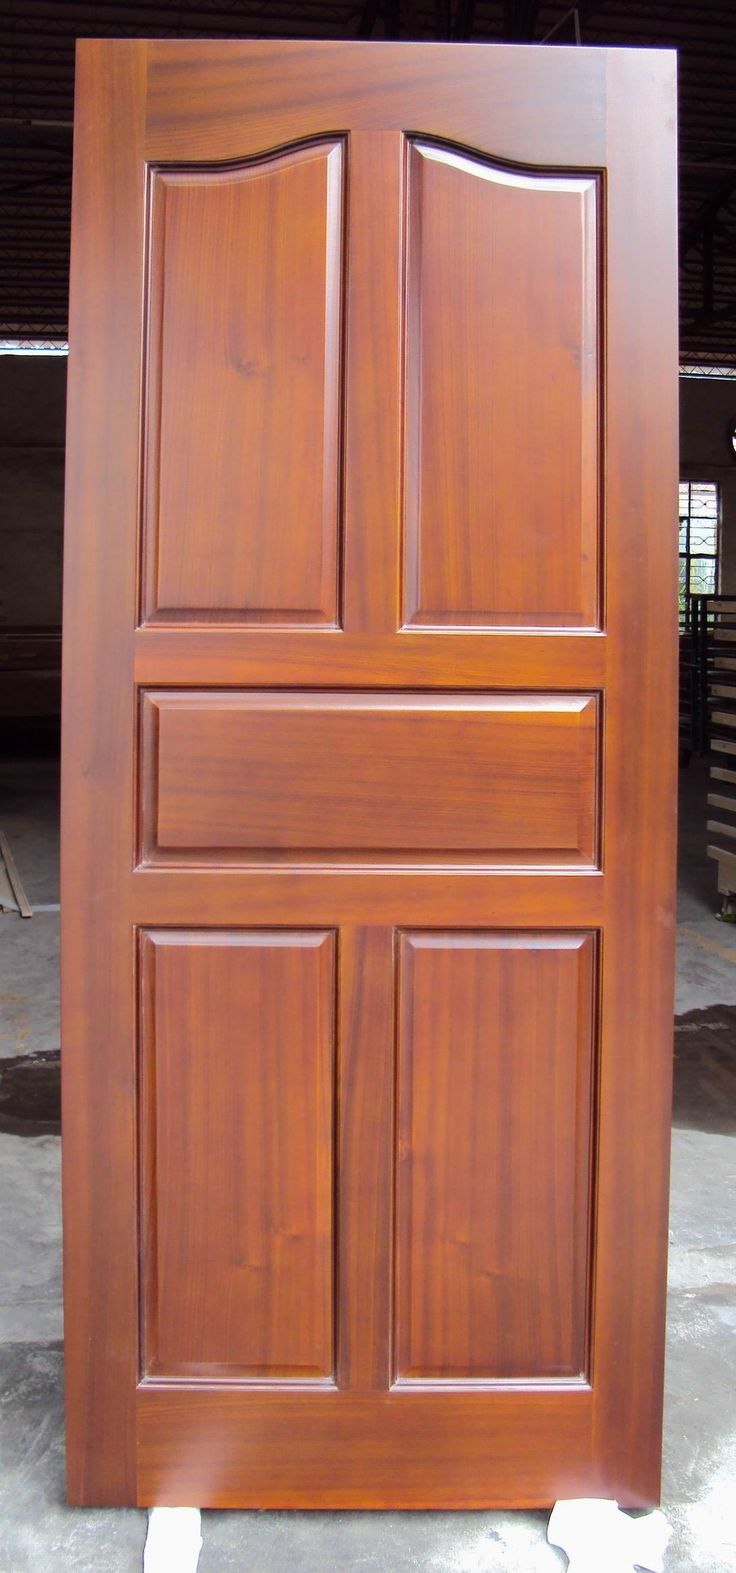 Go green with our new reclaimed teak western decor furniture available - Wood Door Technology With Tradition Wholesale Wood Doors Shop Our Selection Of Wood Doors In The Doors Windows Department At The